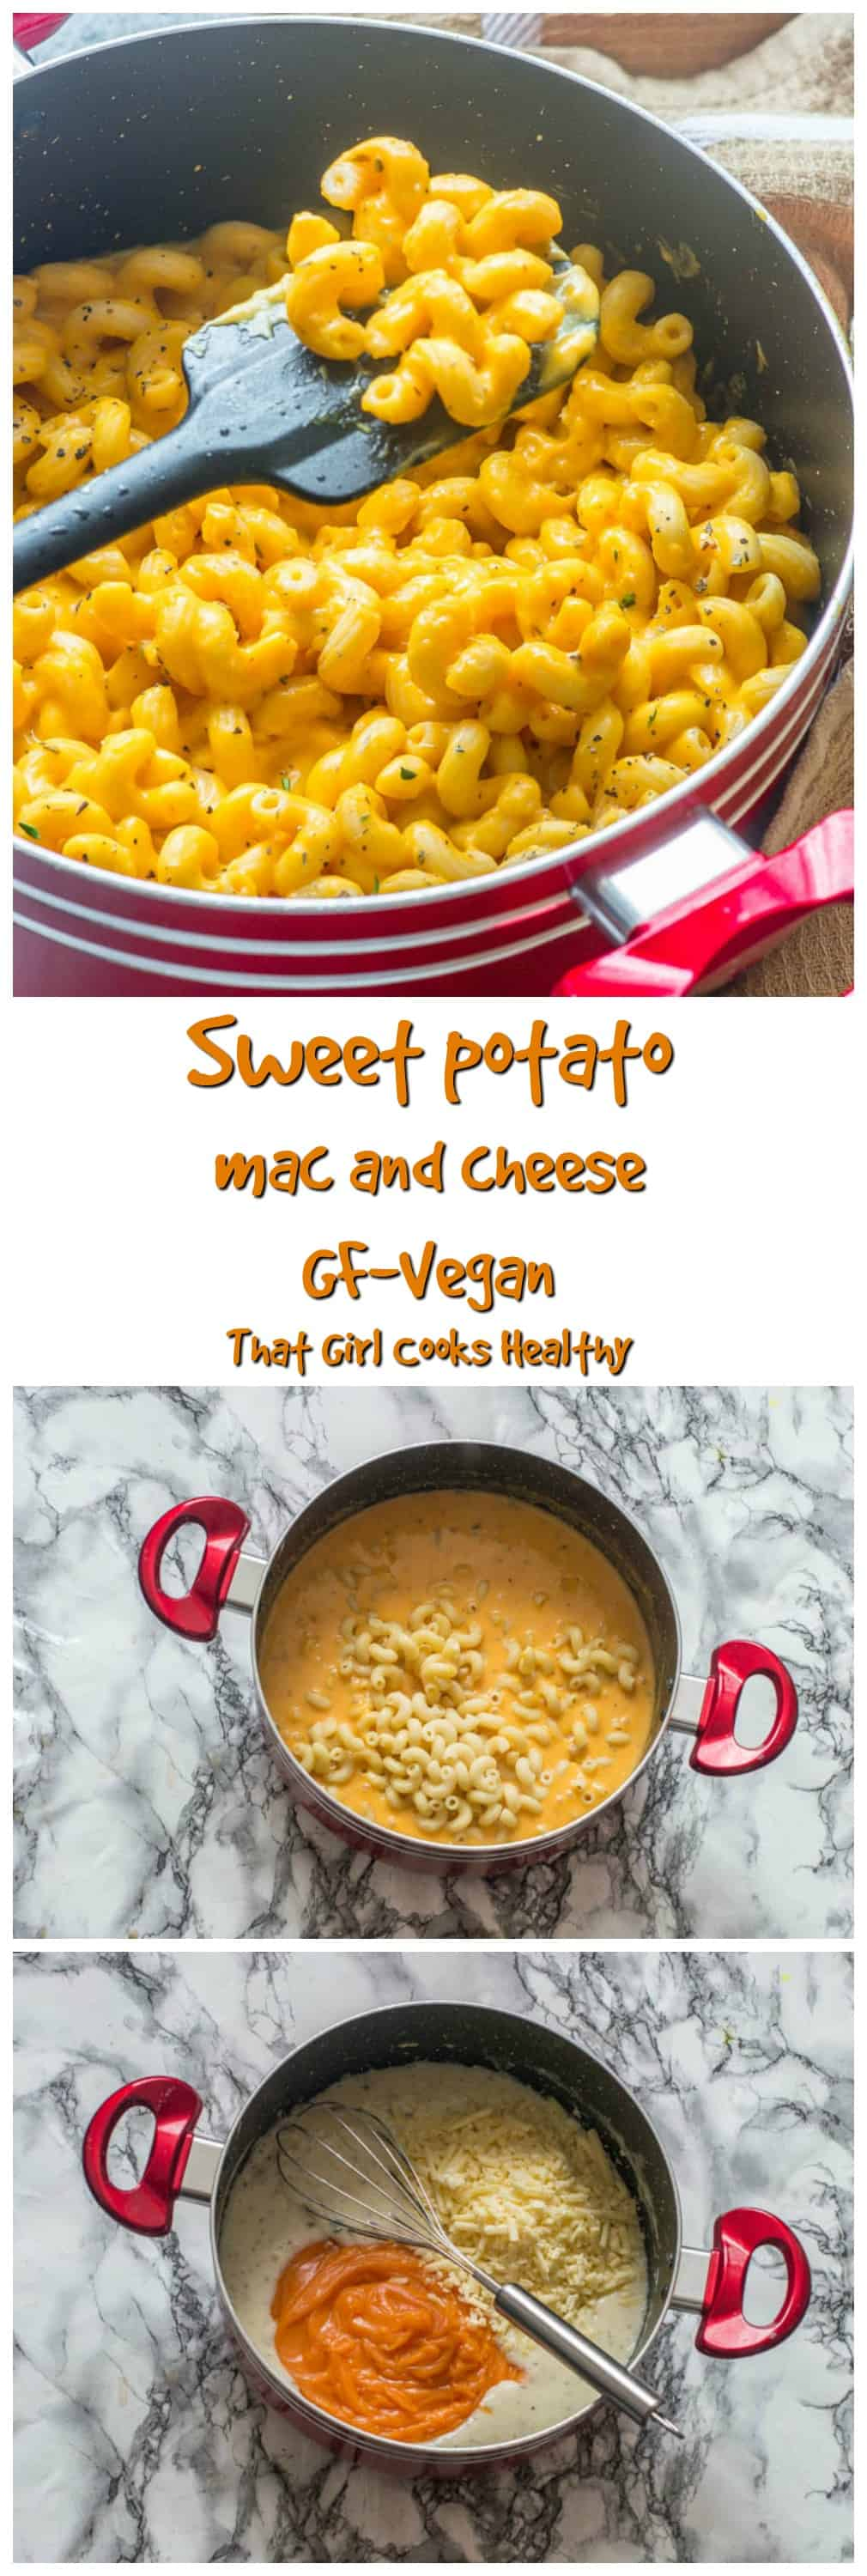 Delicious, time saving sweet potato mac and cheese that's gluten free and vegan friendly